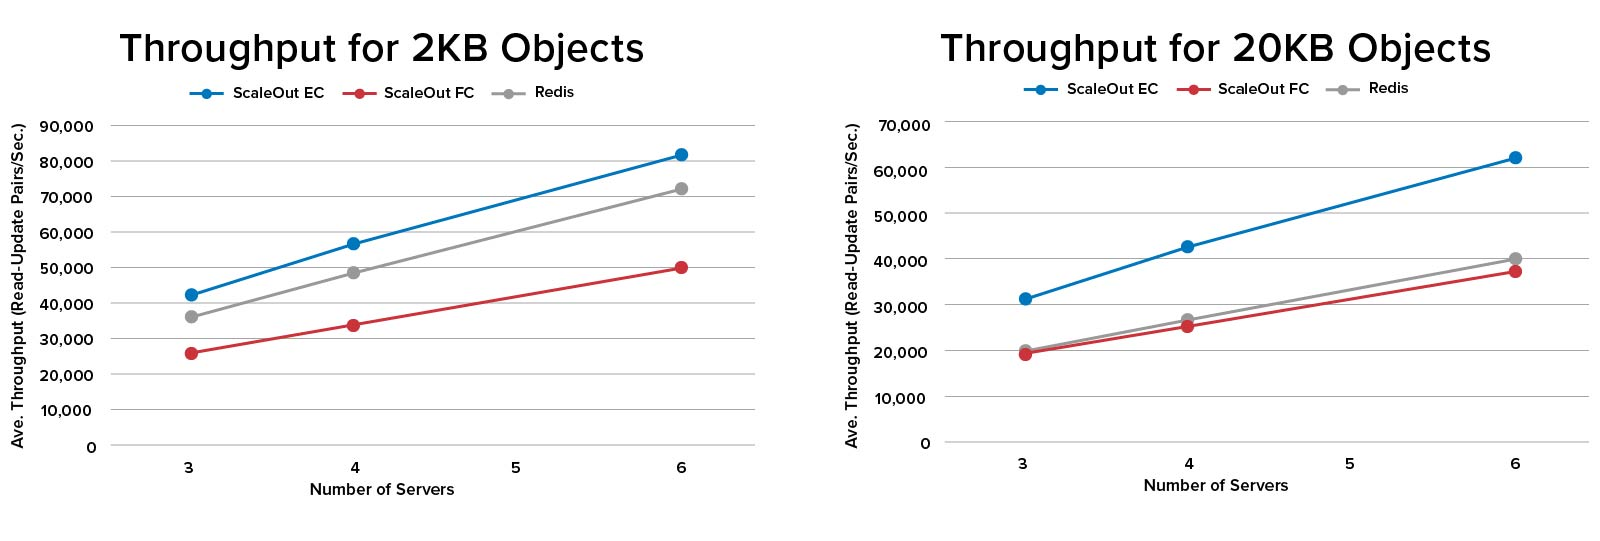 ScaleOut's distributed caching throughput is consistently higher than Redis.